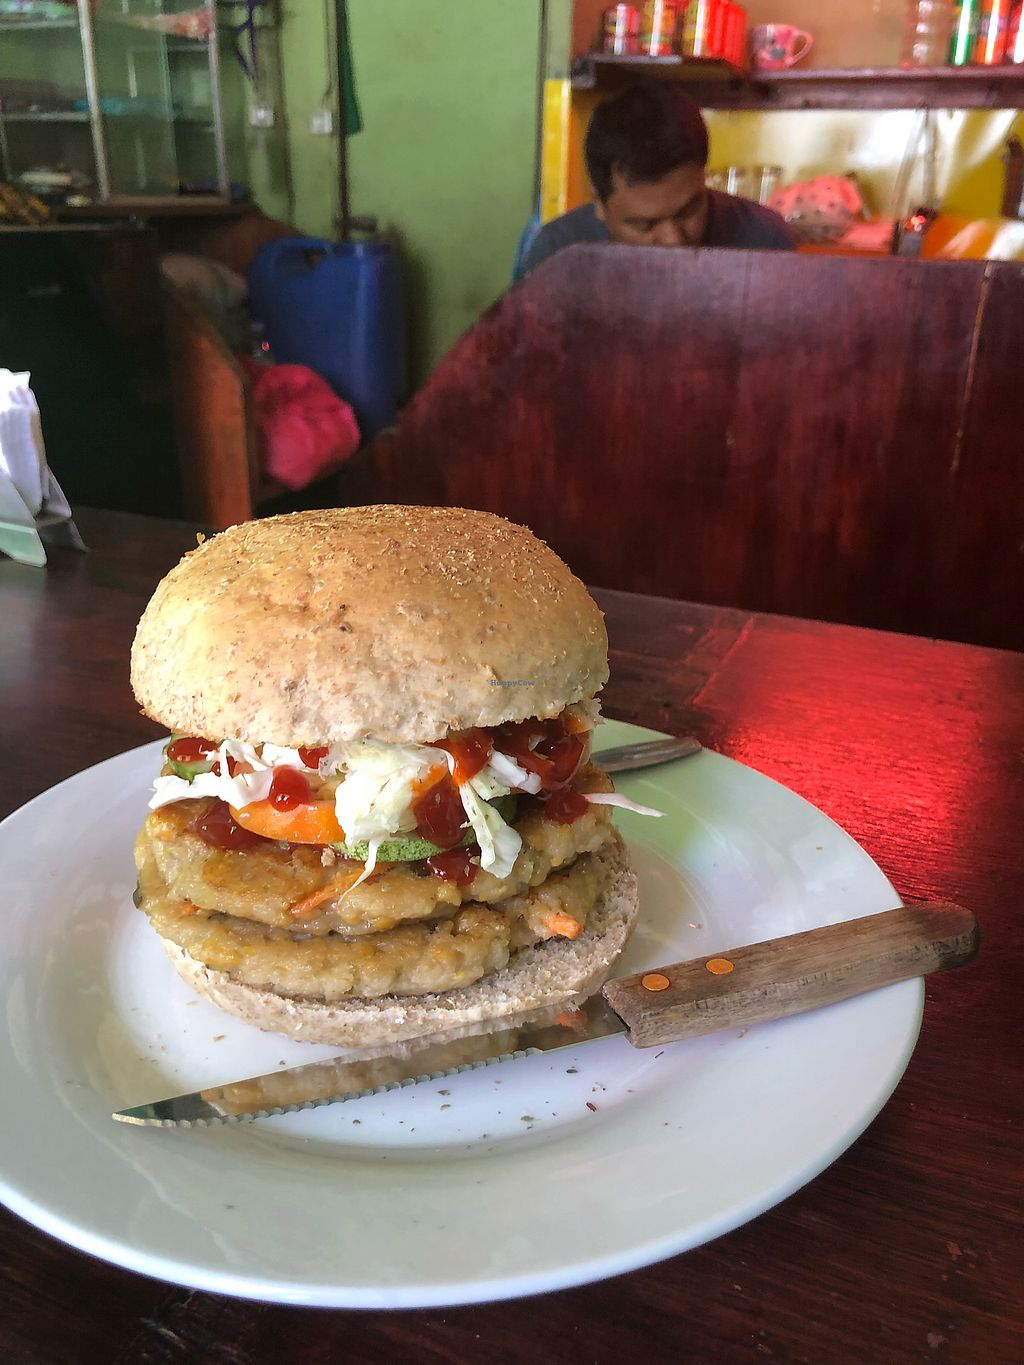 """Photo of Pauls's Magic - Vegan Veggie Snacks  by <a href=""""/members/profile/emanu"""">emanu</a> <br/>Double Decker Falafel Burger <br/> January 10, 2018  - <a href='/contact/abuse/image/89570/345020'>Report</a>"""